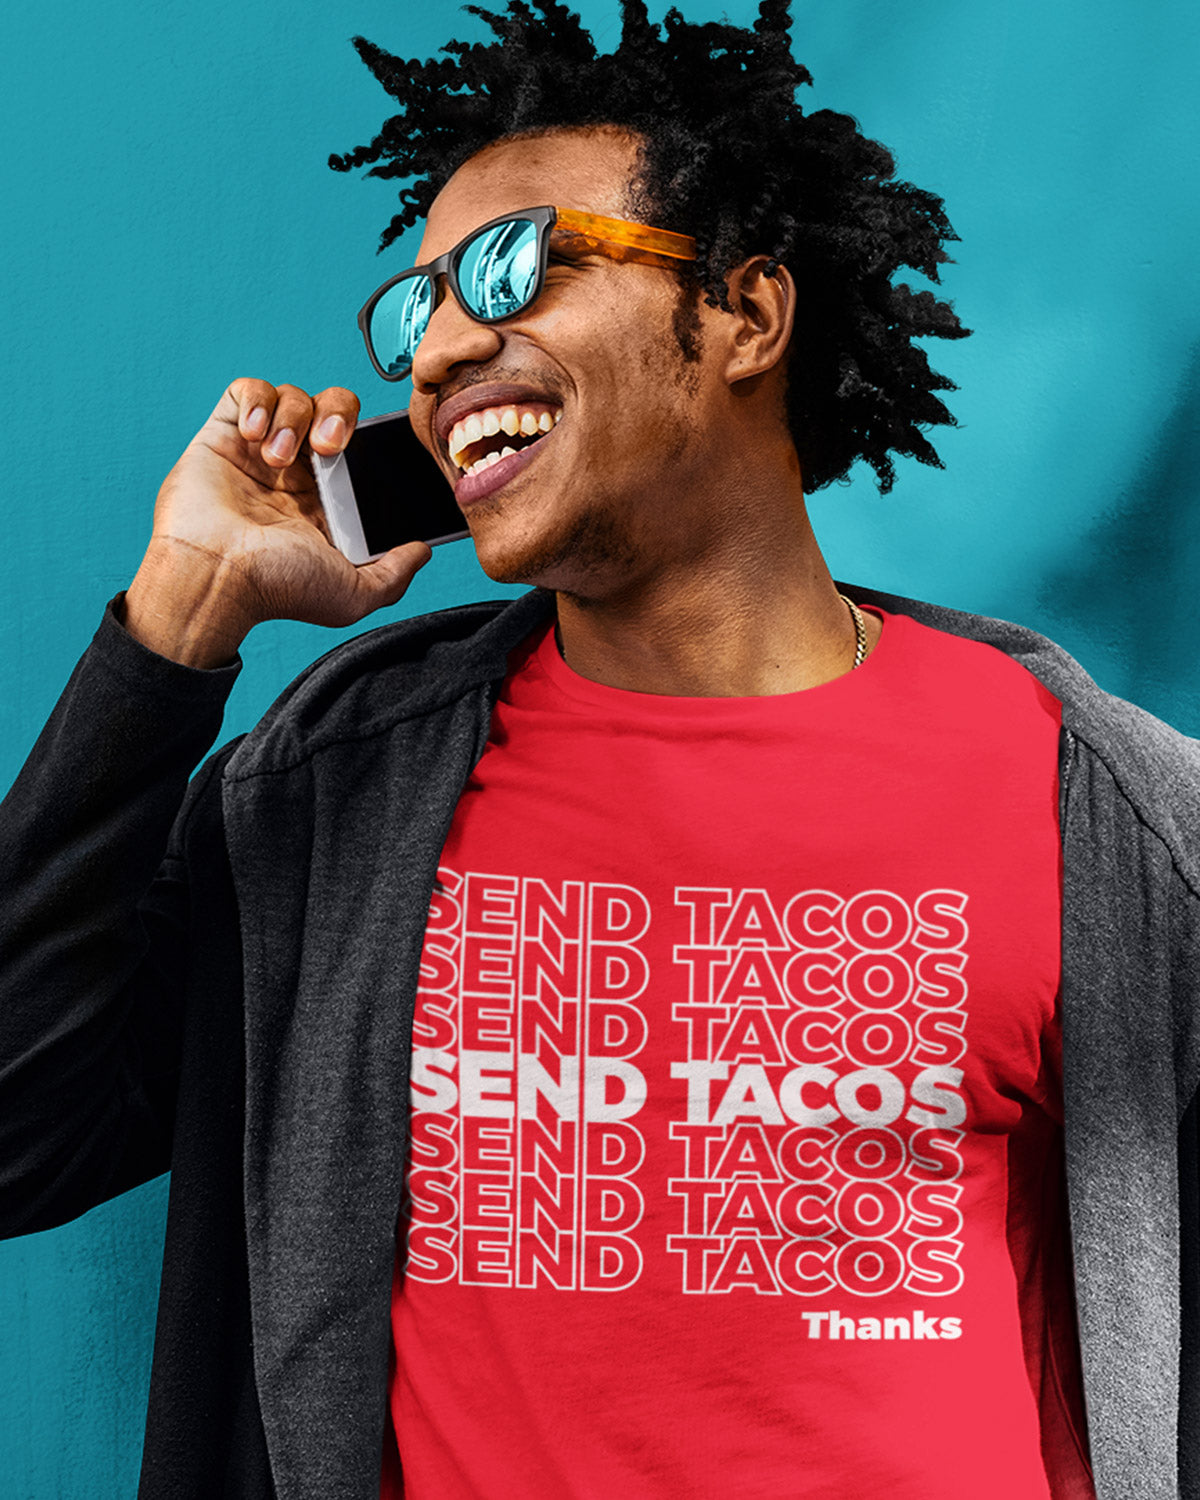 red Send Tacos Shirt - Taco Gear on model